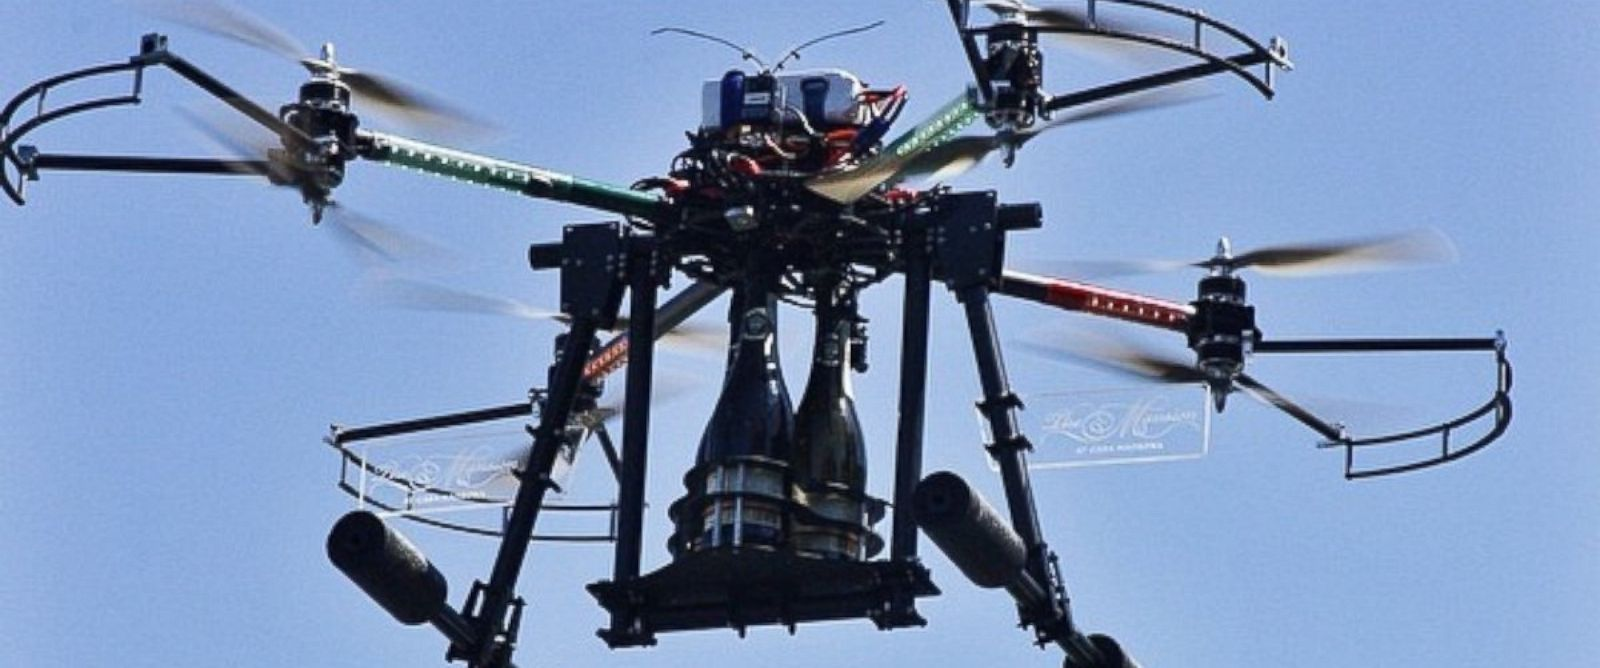 PHOTO: Champagne drone delivery service, as seen in this undated photo posted to Instagram, is offered at Casa Madrona hotel in Sausalito, Calif.